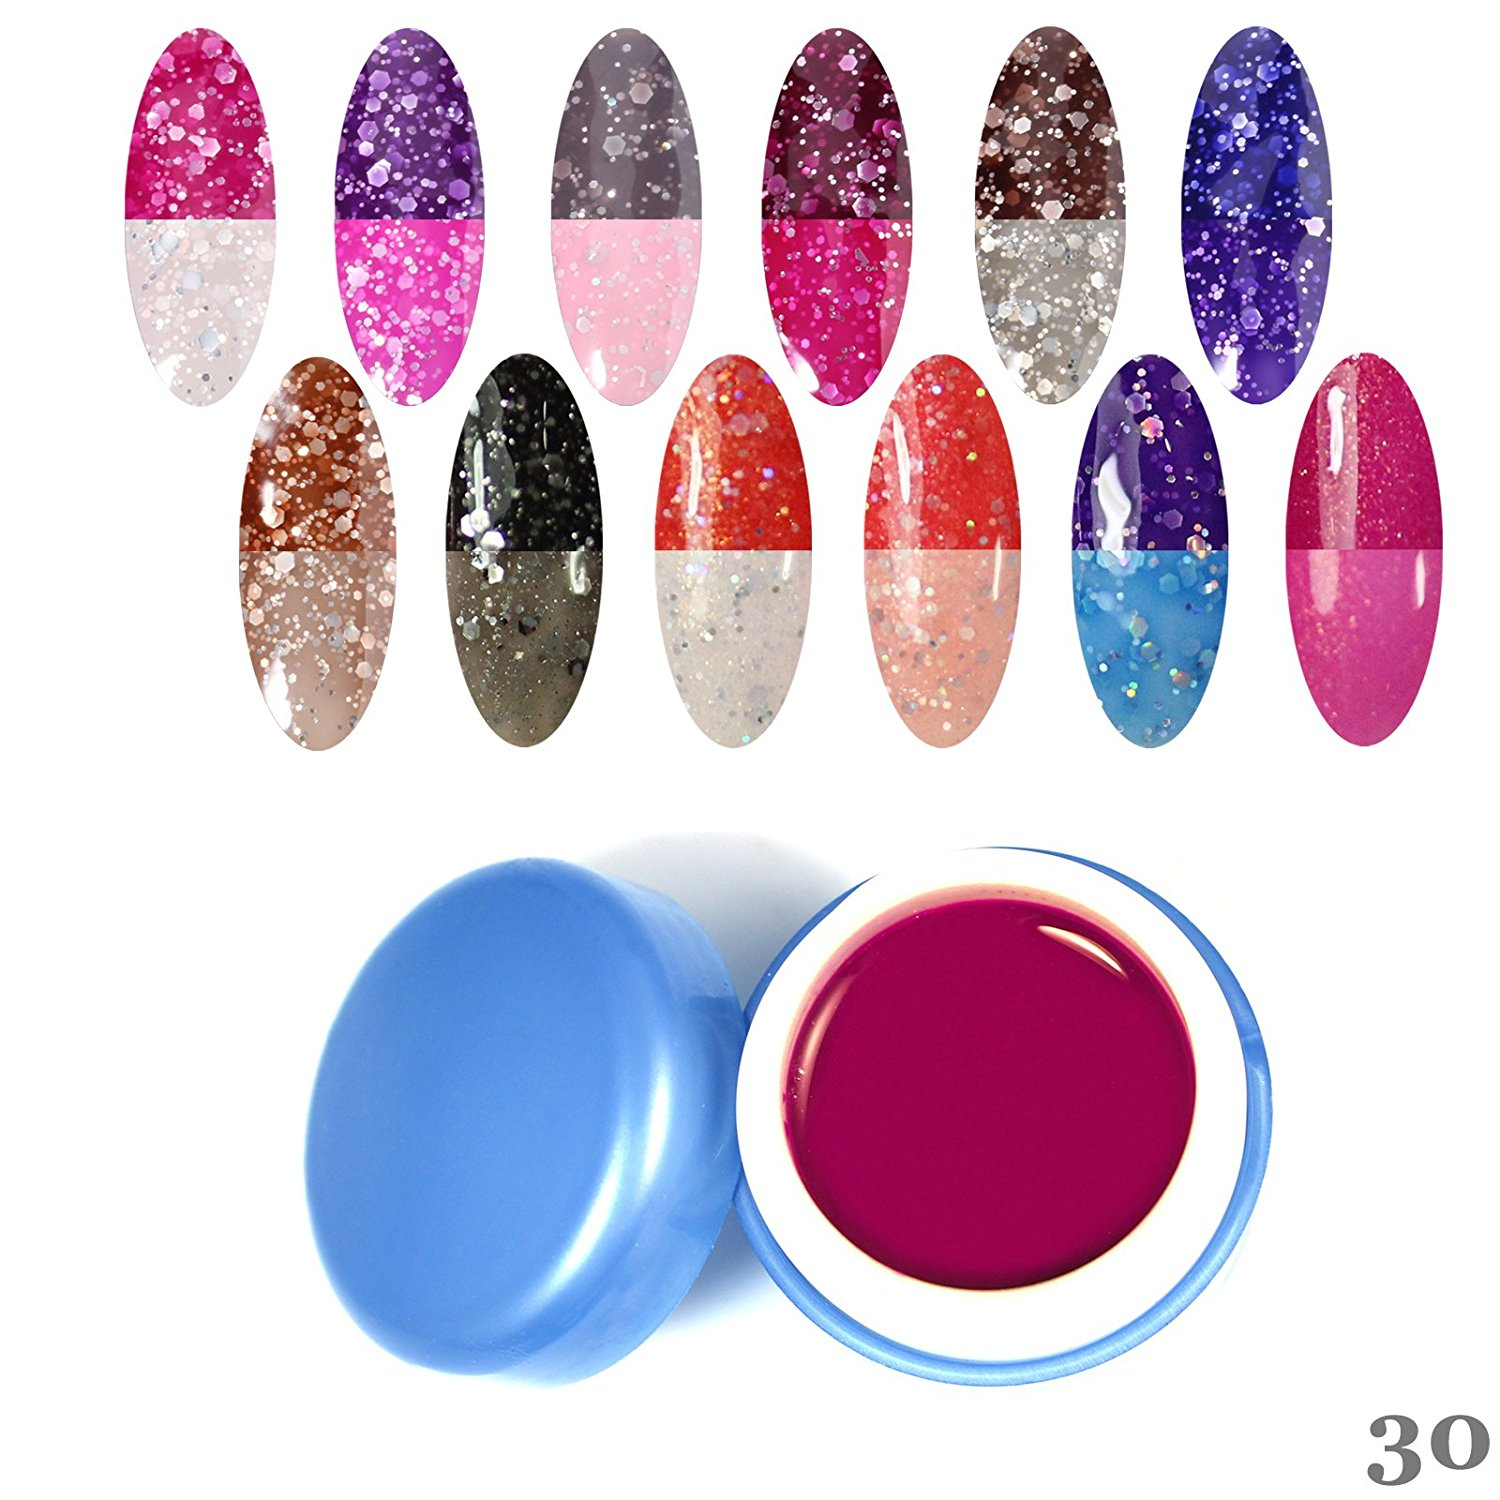 Perfect Summer 12pcs 6ml Chameleon Temperature Changing Colour Nail Lacquers Soak Off Led UV Colors Gel Polish Elegant Thermal Salon Nails Artistic Painting Kits Sets #30